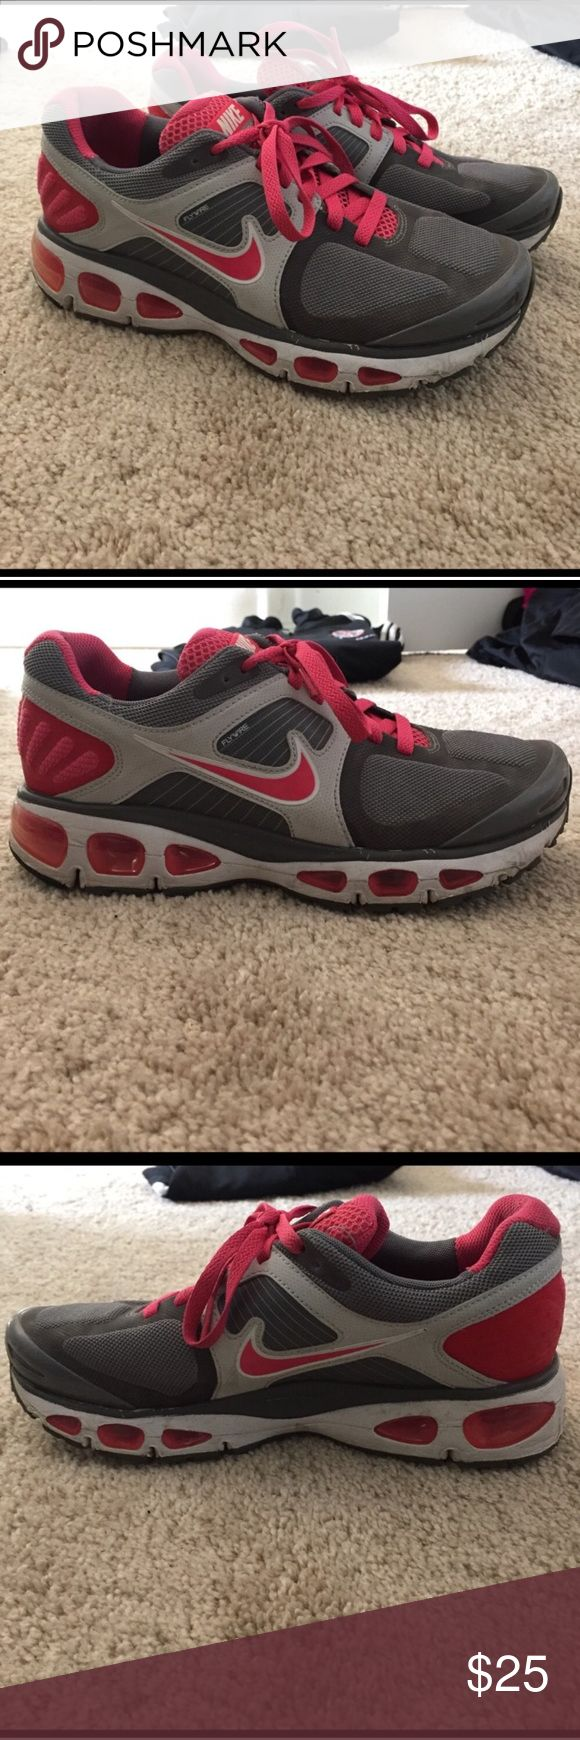 Nike Air Tailwind Shoes Flywire Technology Used but in good condition Nike Shoes Athletic Shoes